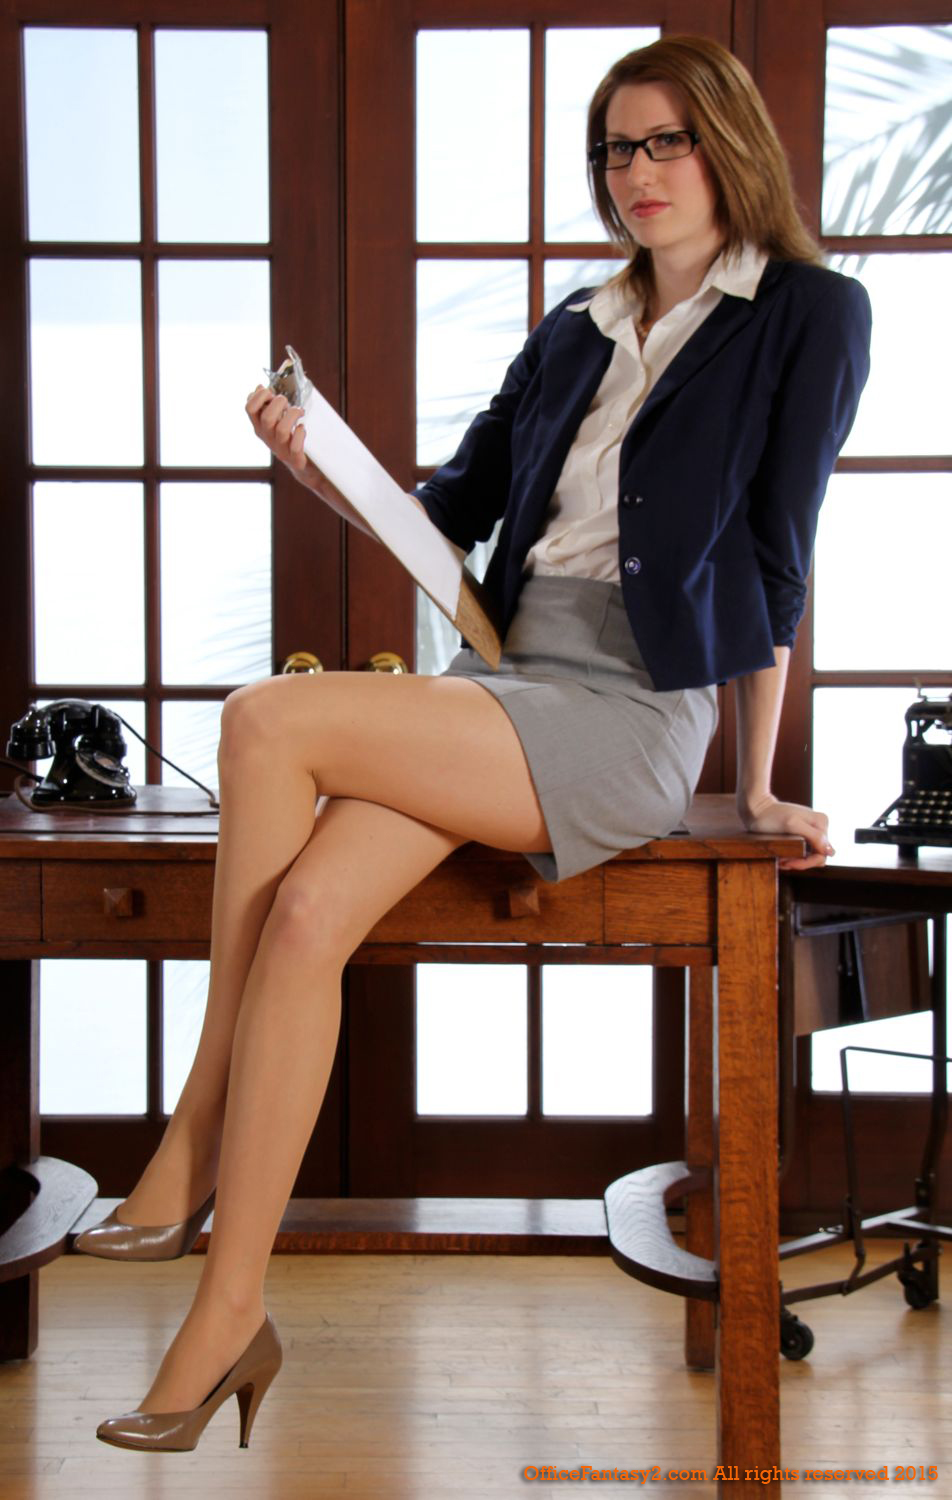 [Office Fantasy] Jessica01